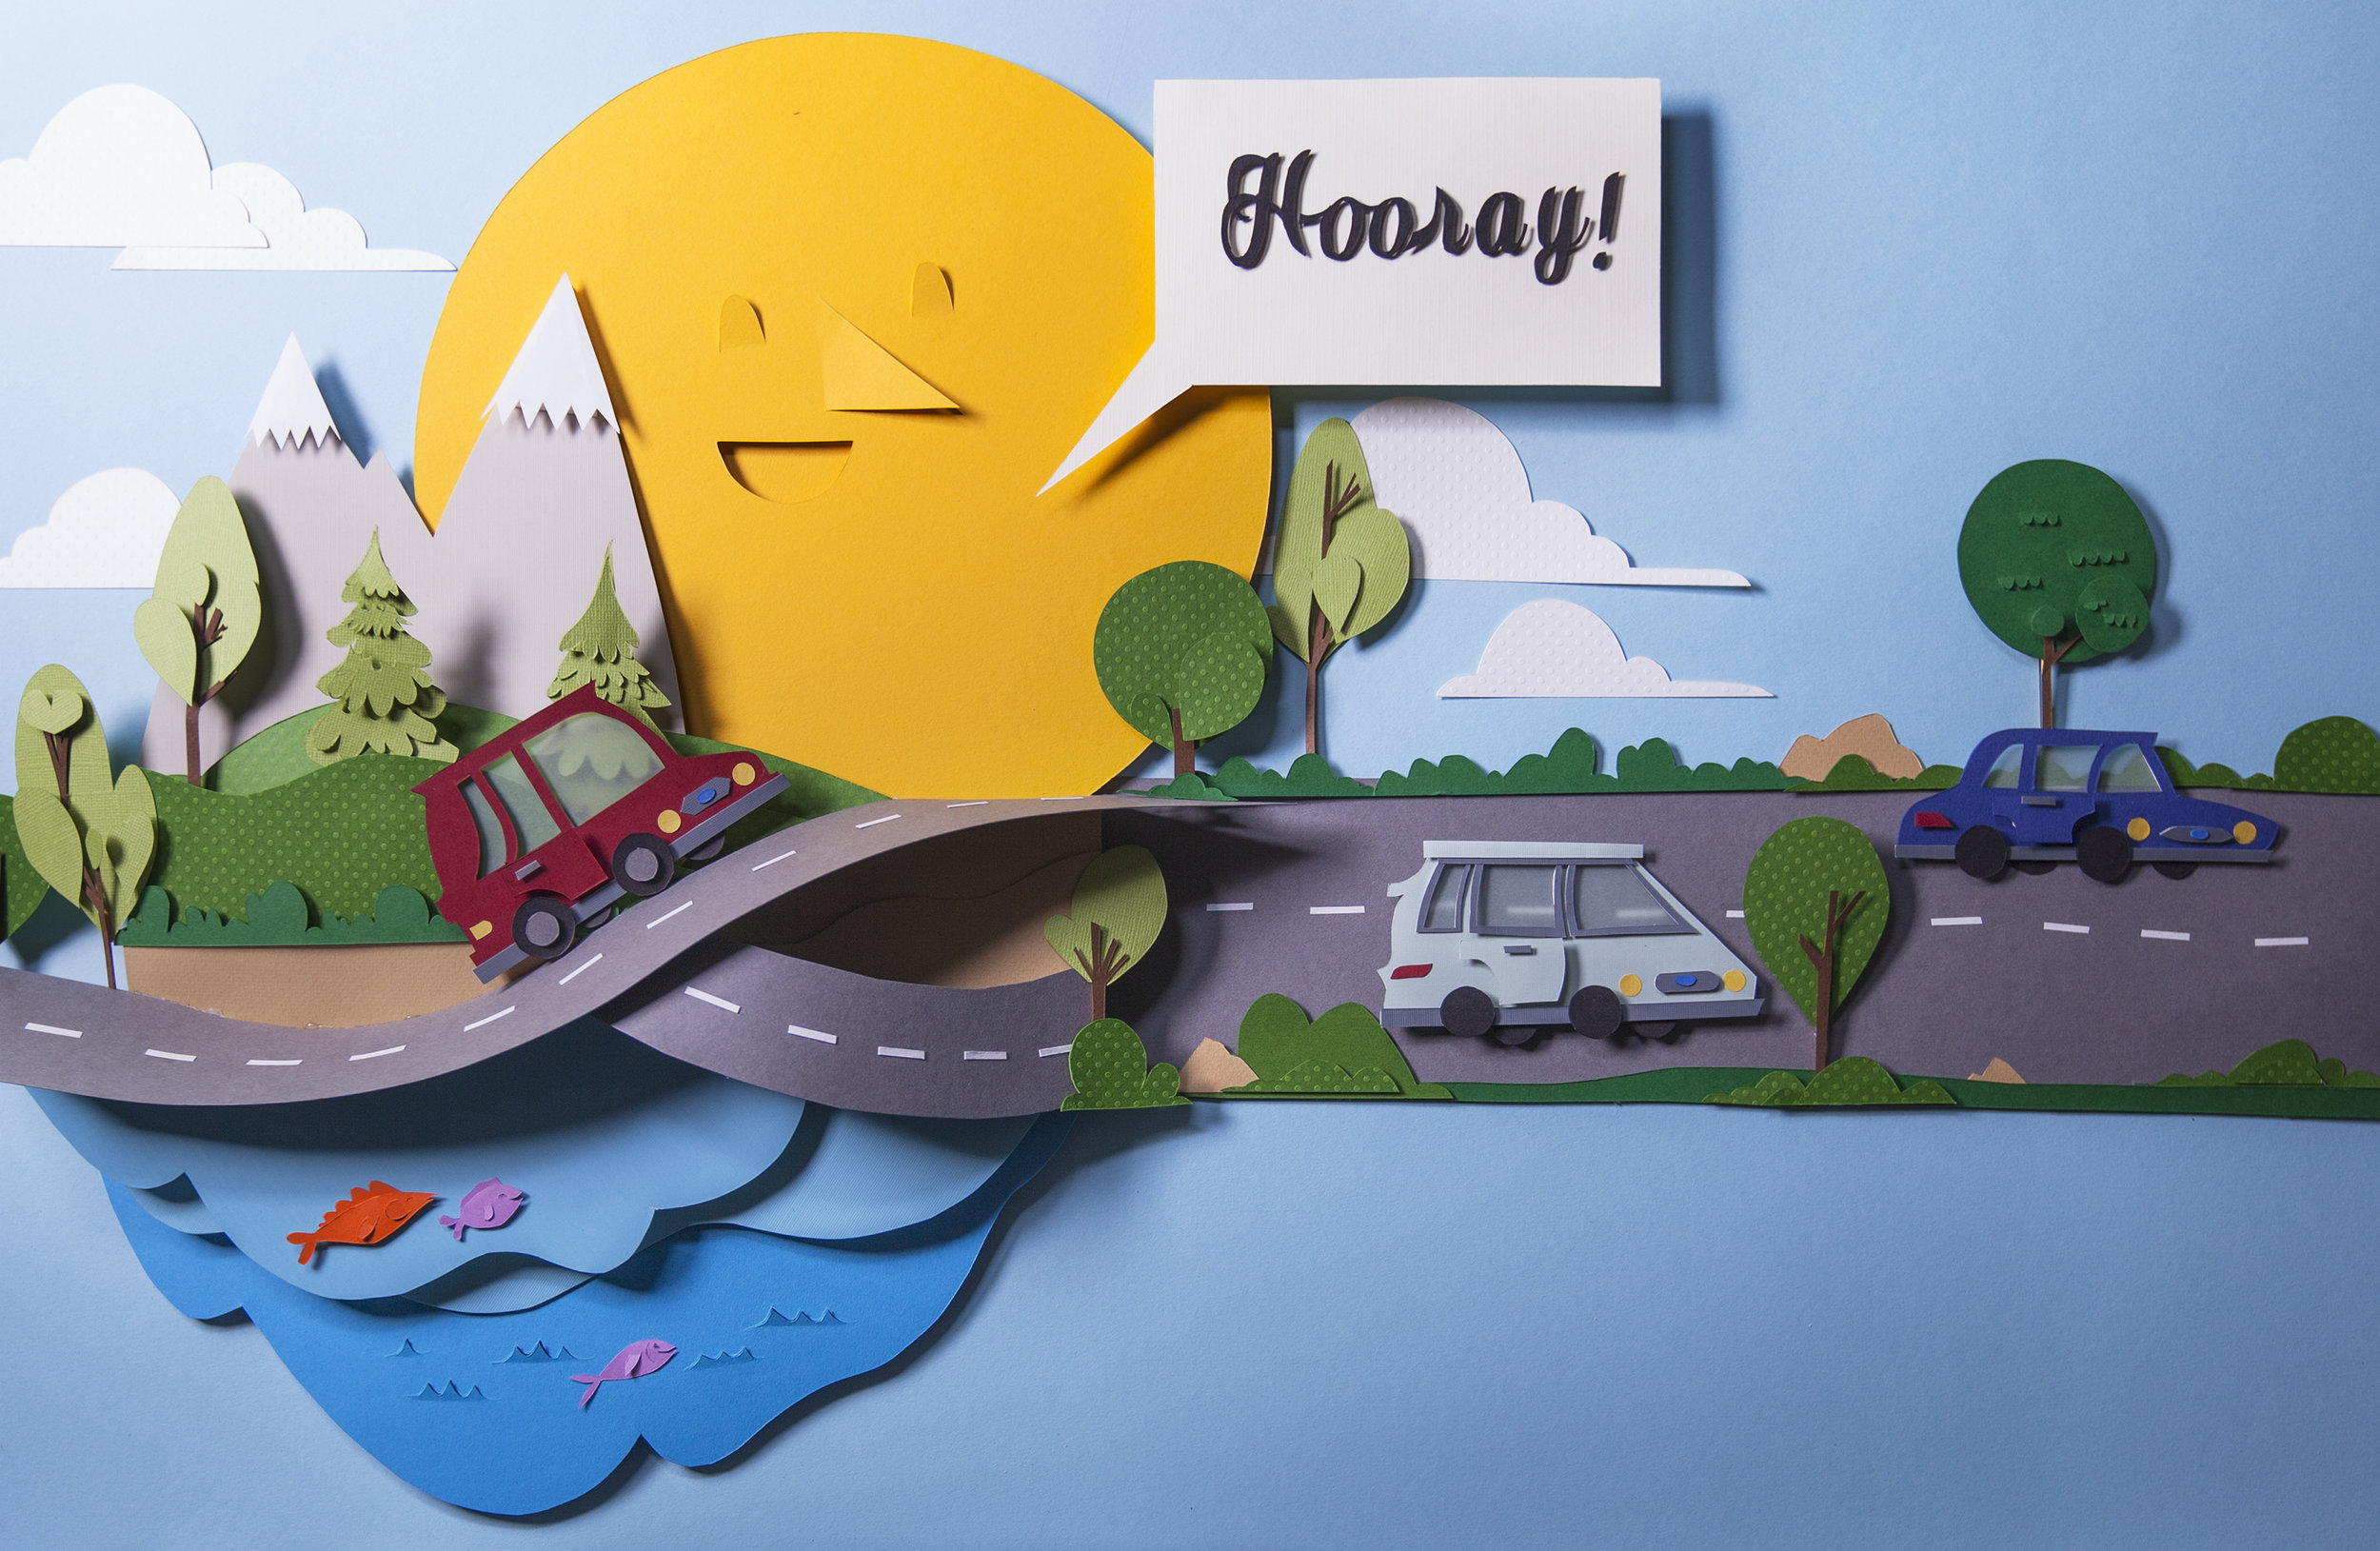 Papercraft Piece for Ford, Vitamin Pictures